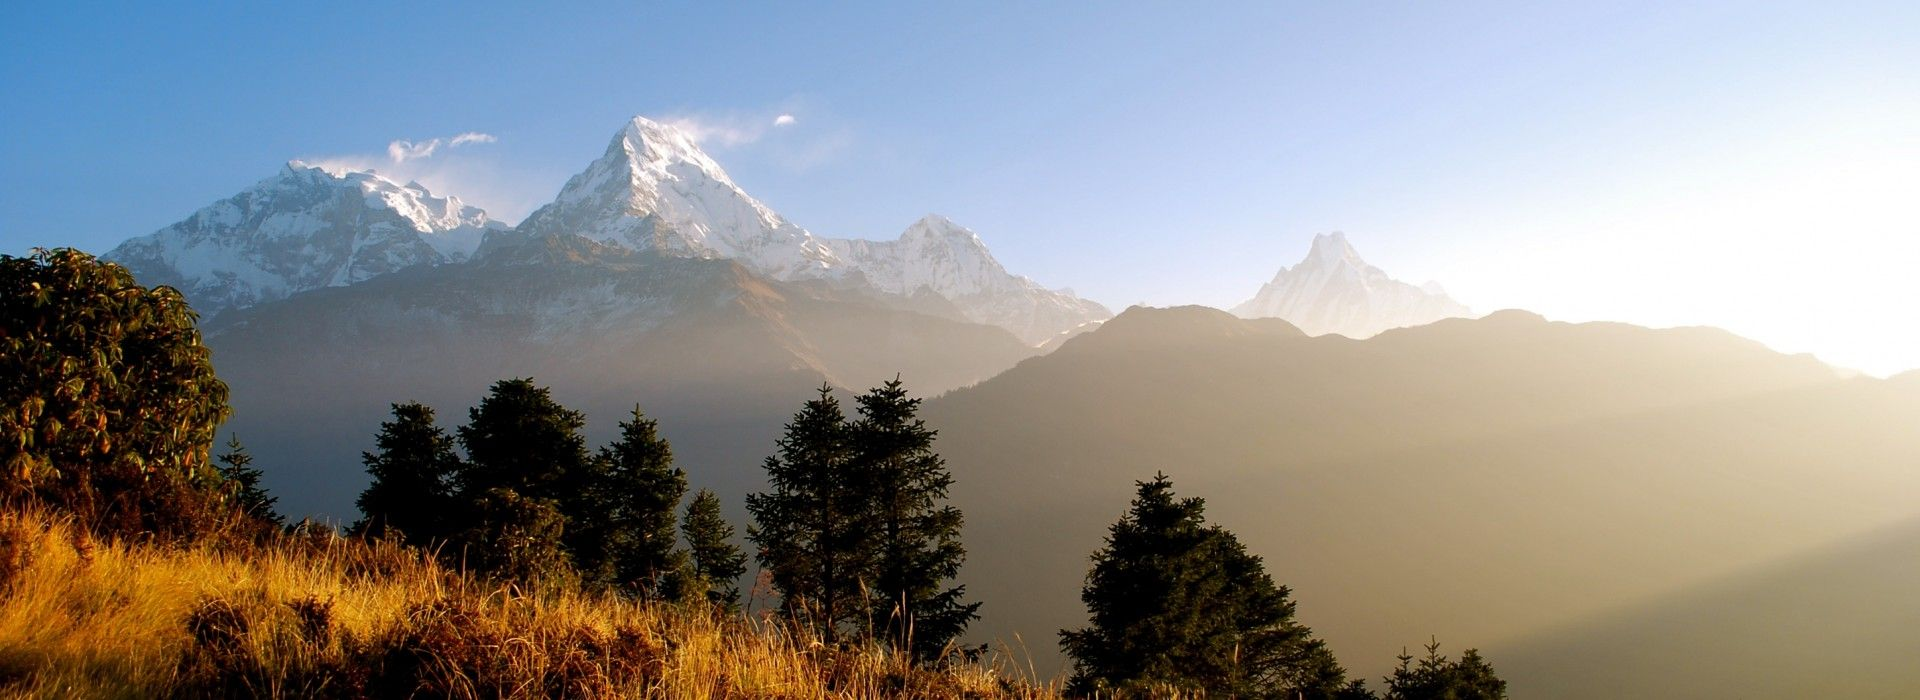 Air tours, road trips and transfers in Kathmandu